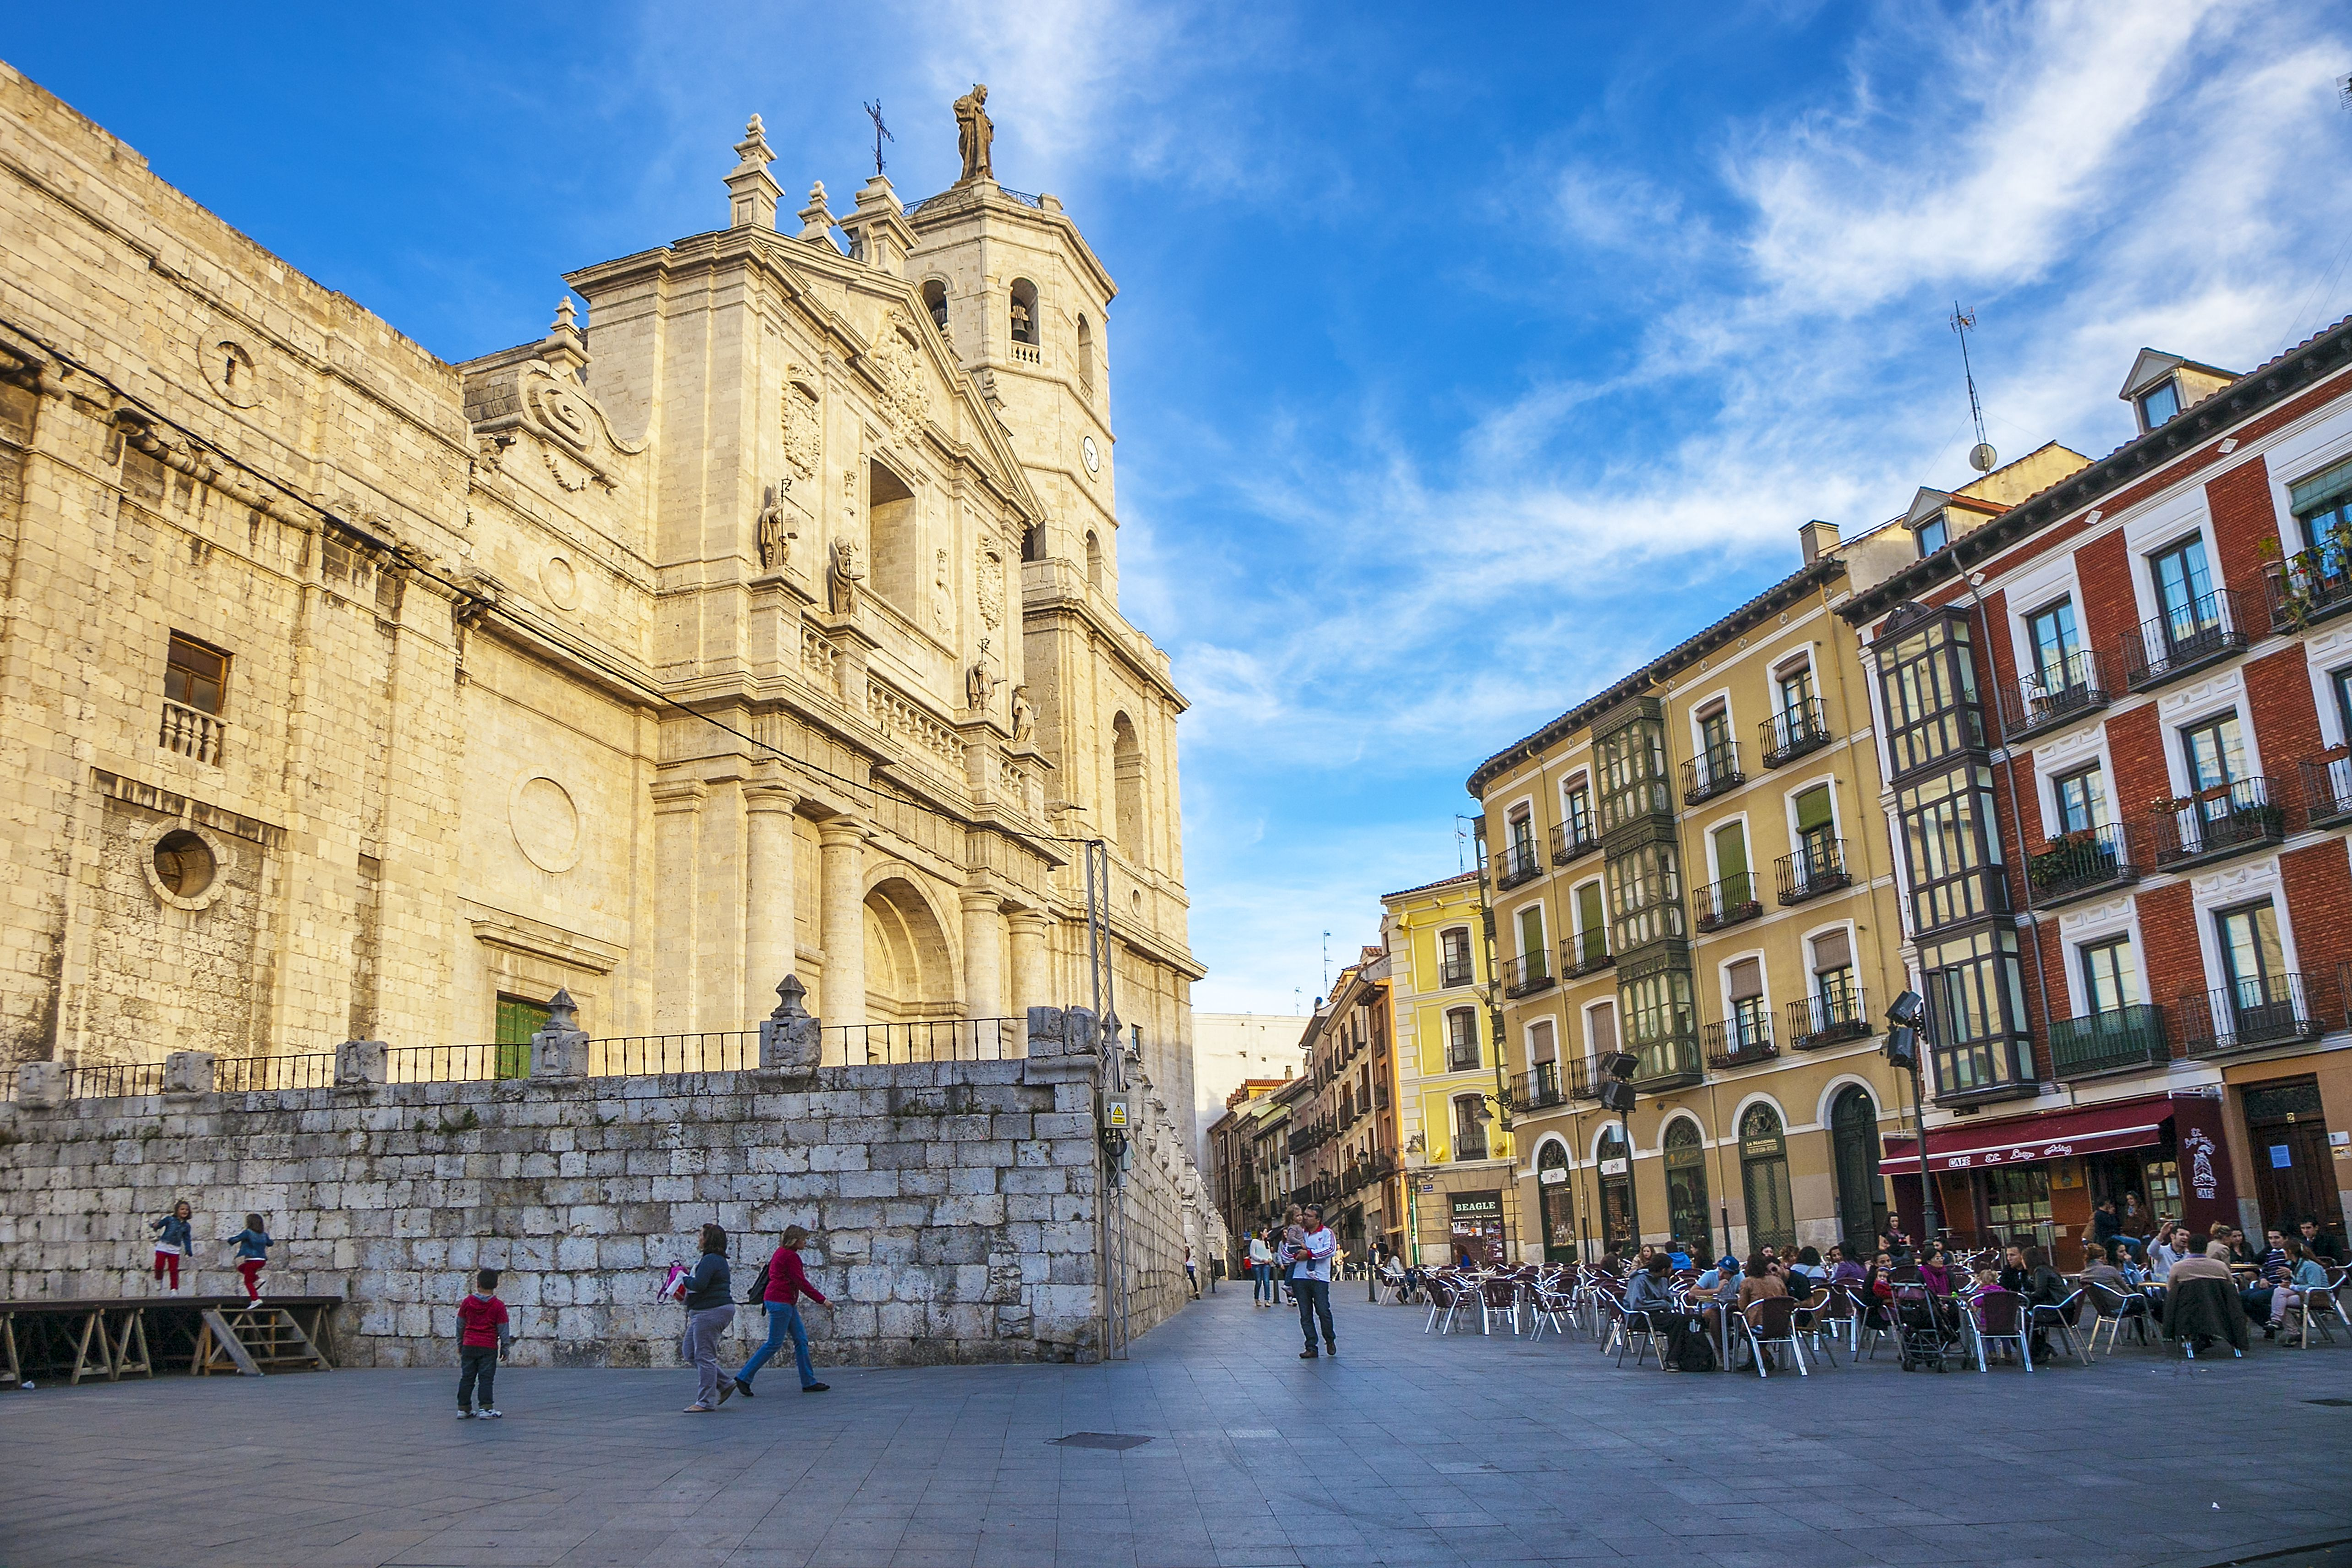 Cathedral of Valladolid